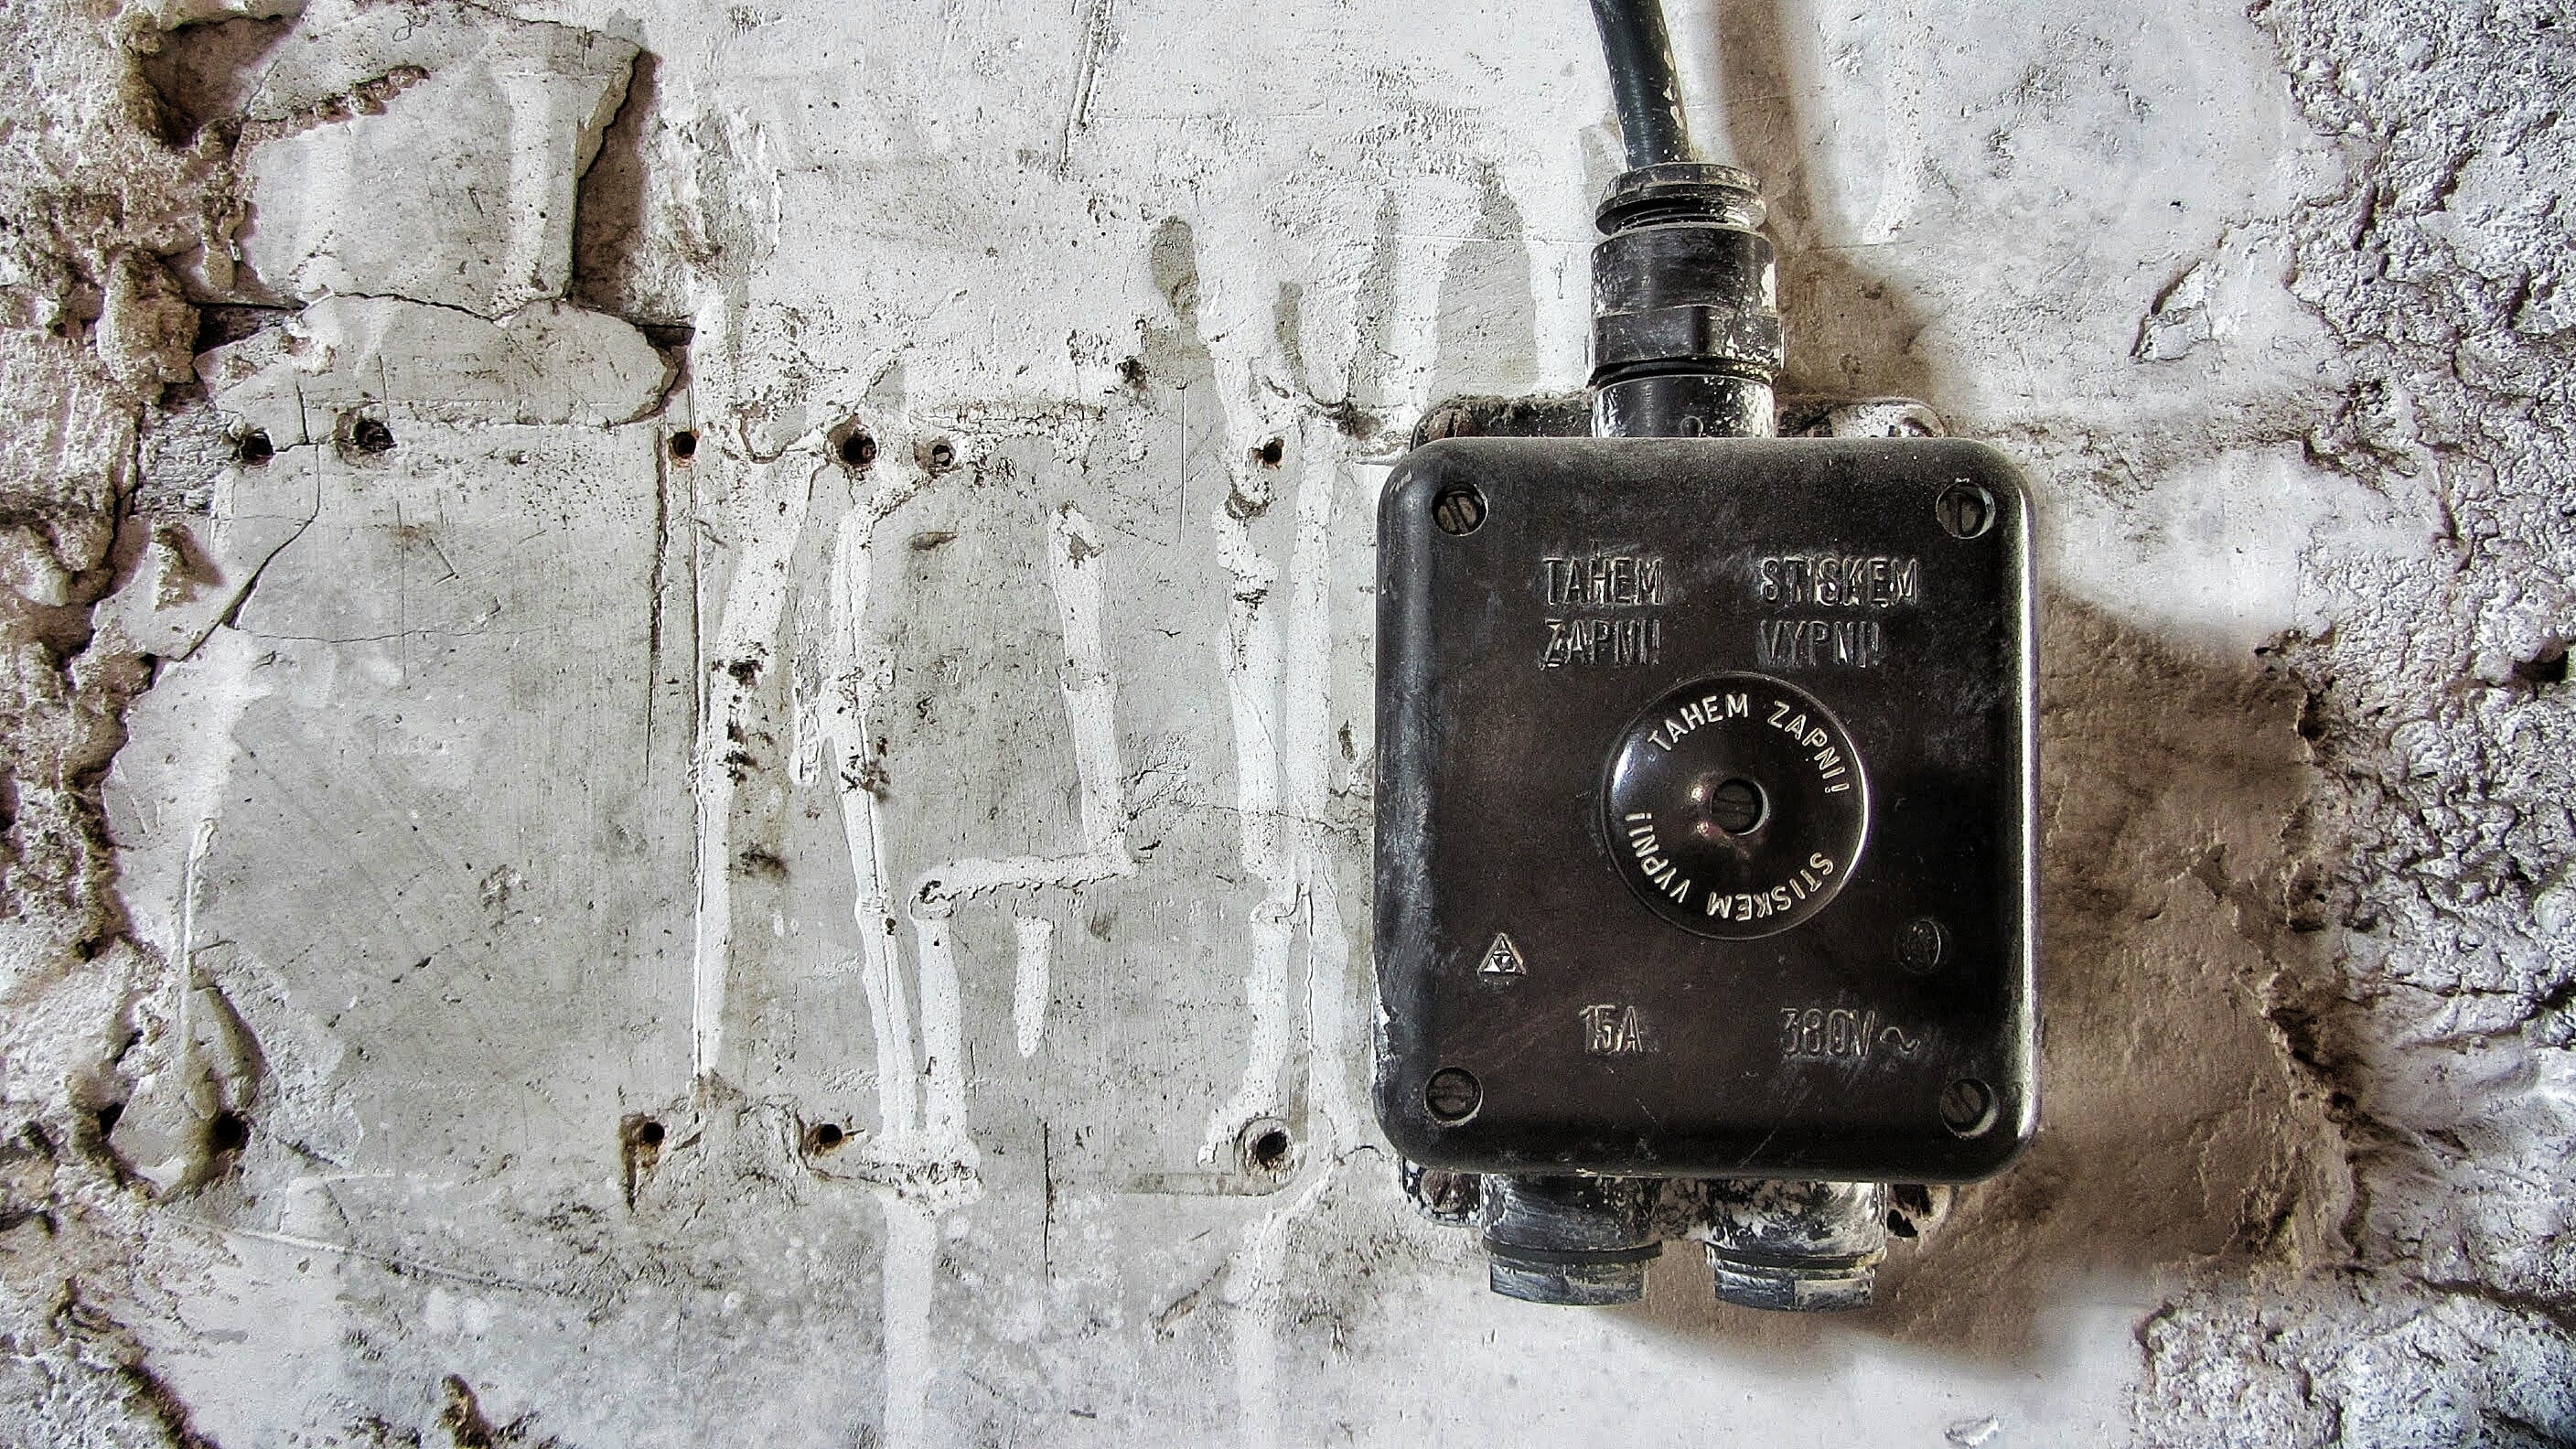 Old black electric box situated on a gray concrete wall